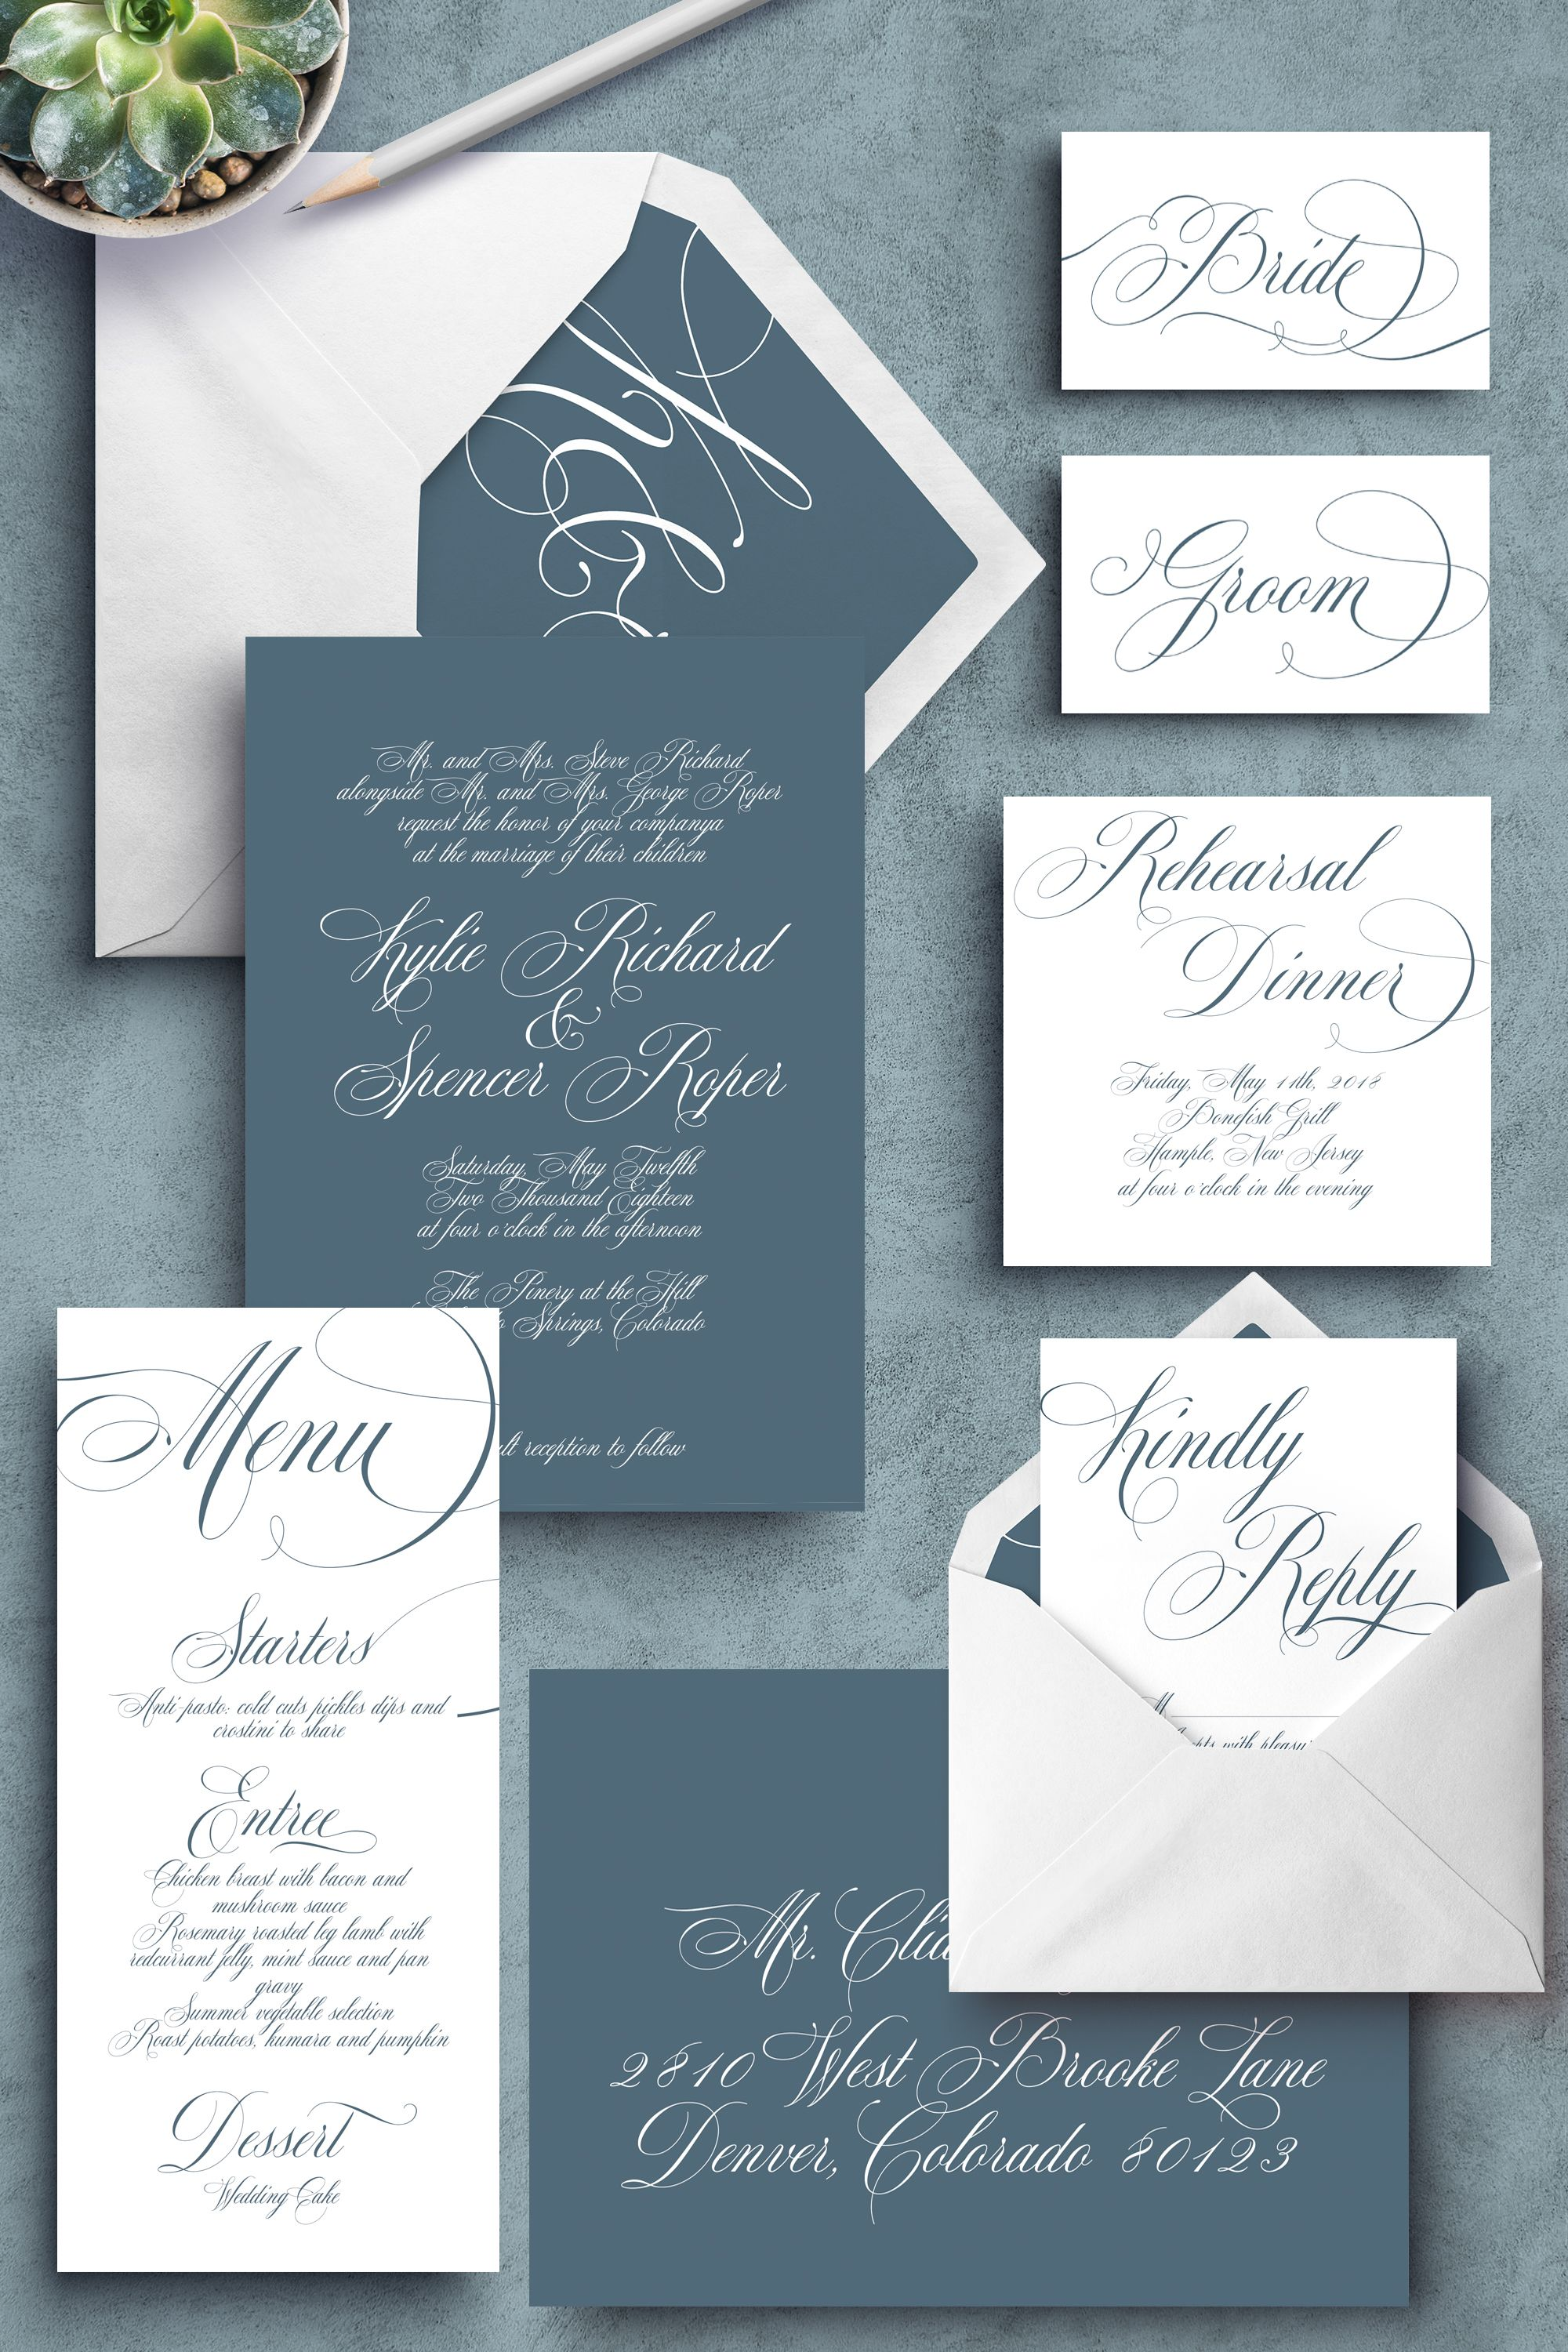 Awesome Custom Wedding Invitations Wedding Ideas